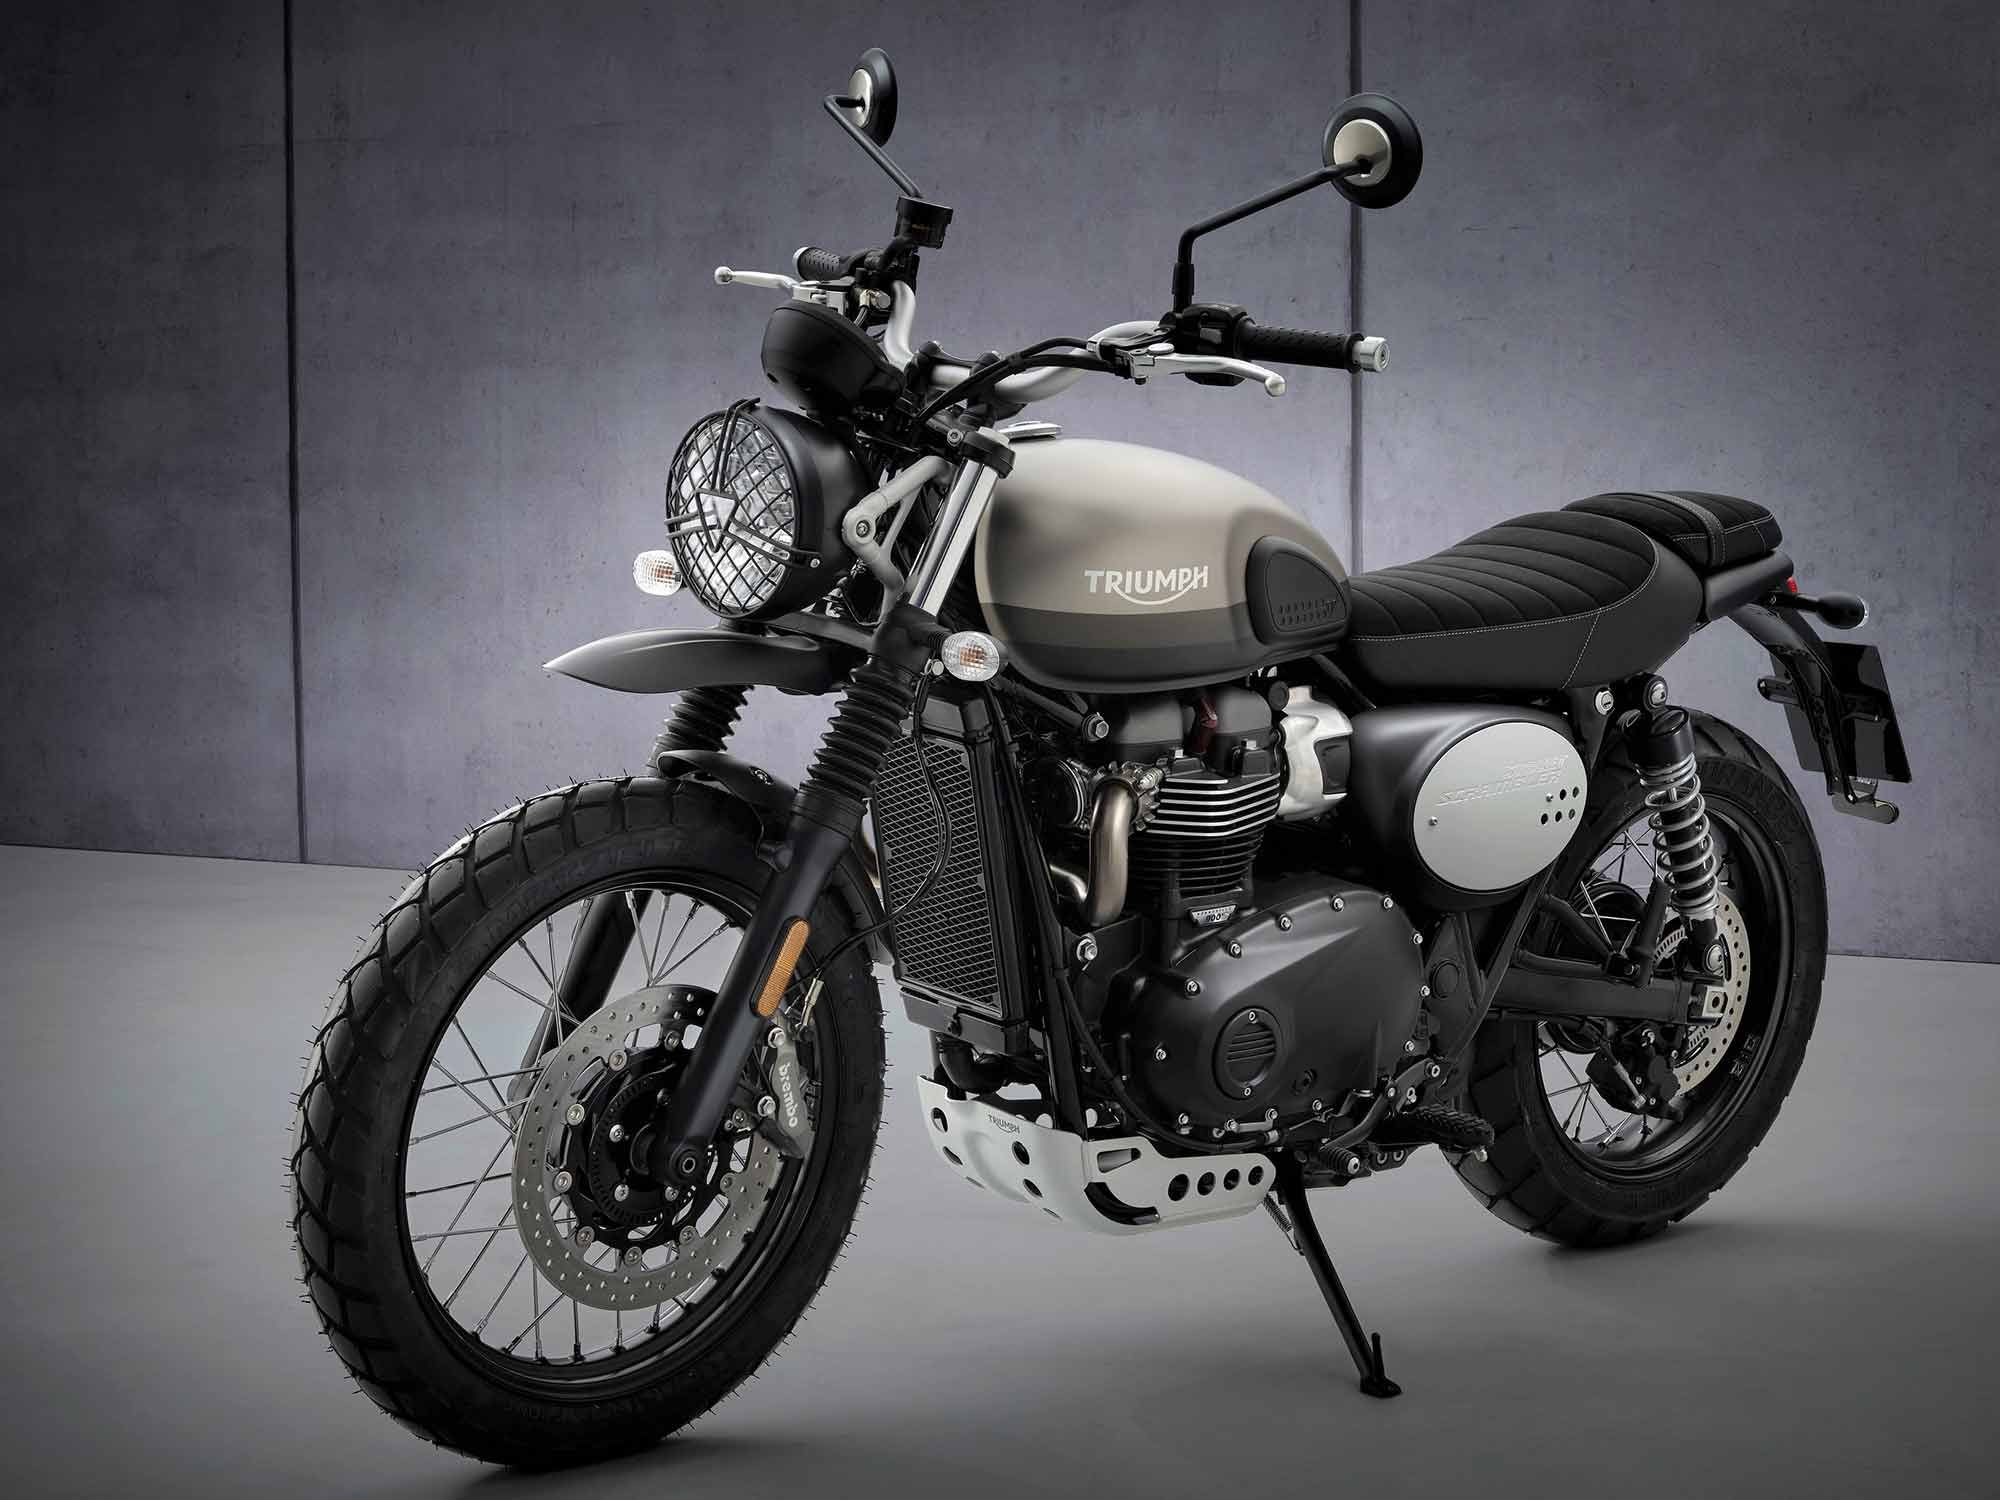 Triumph has updated its 900cc Street Scrambler for 2022, and added this new limited-edition Sandstorm model.